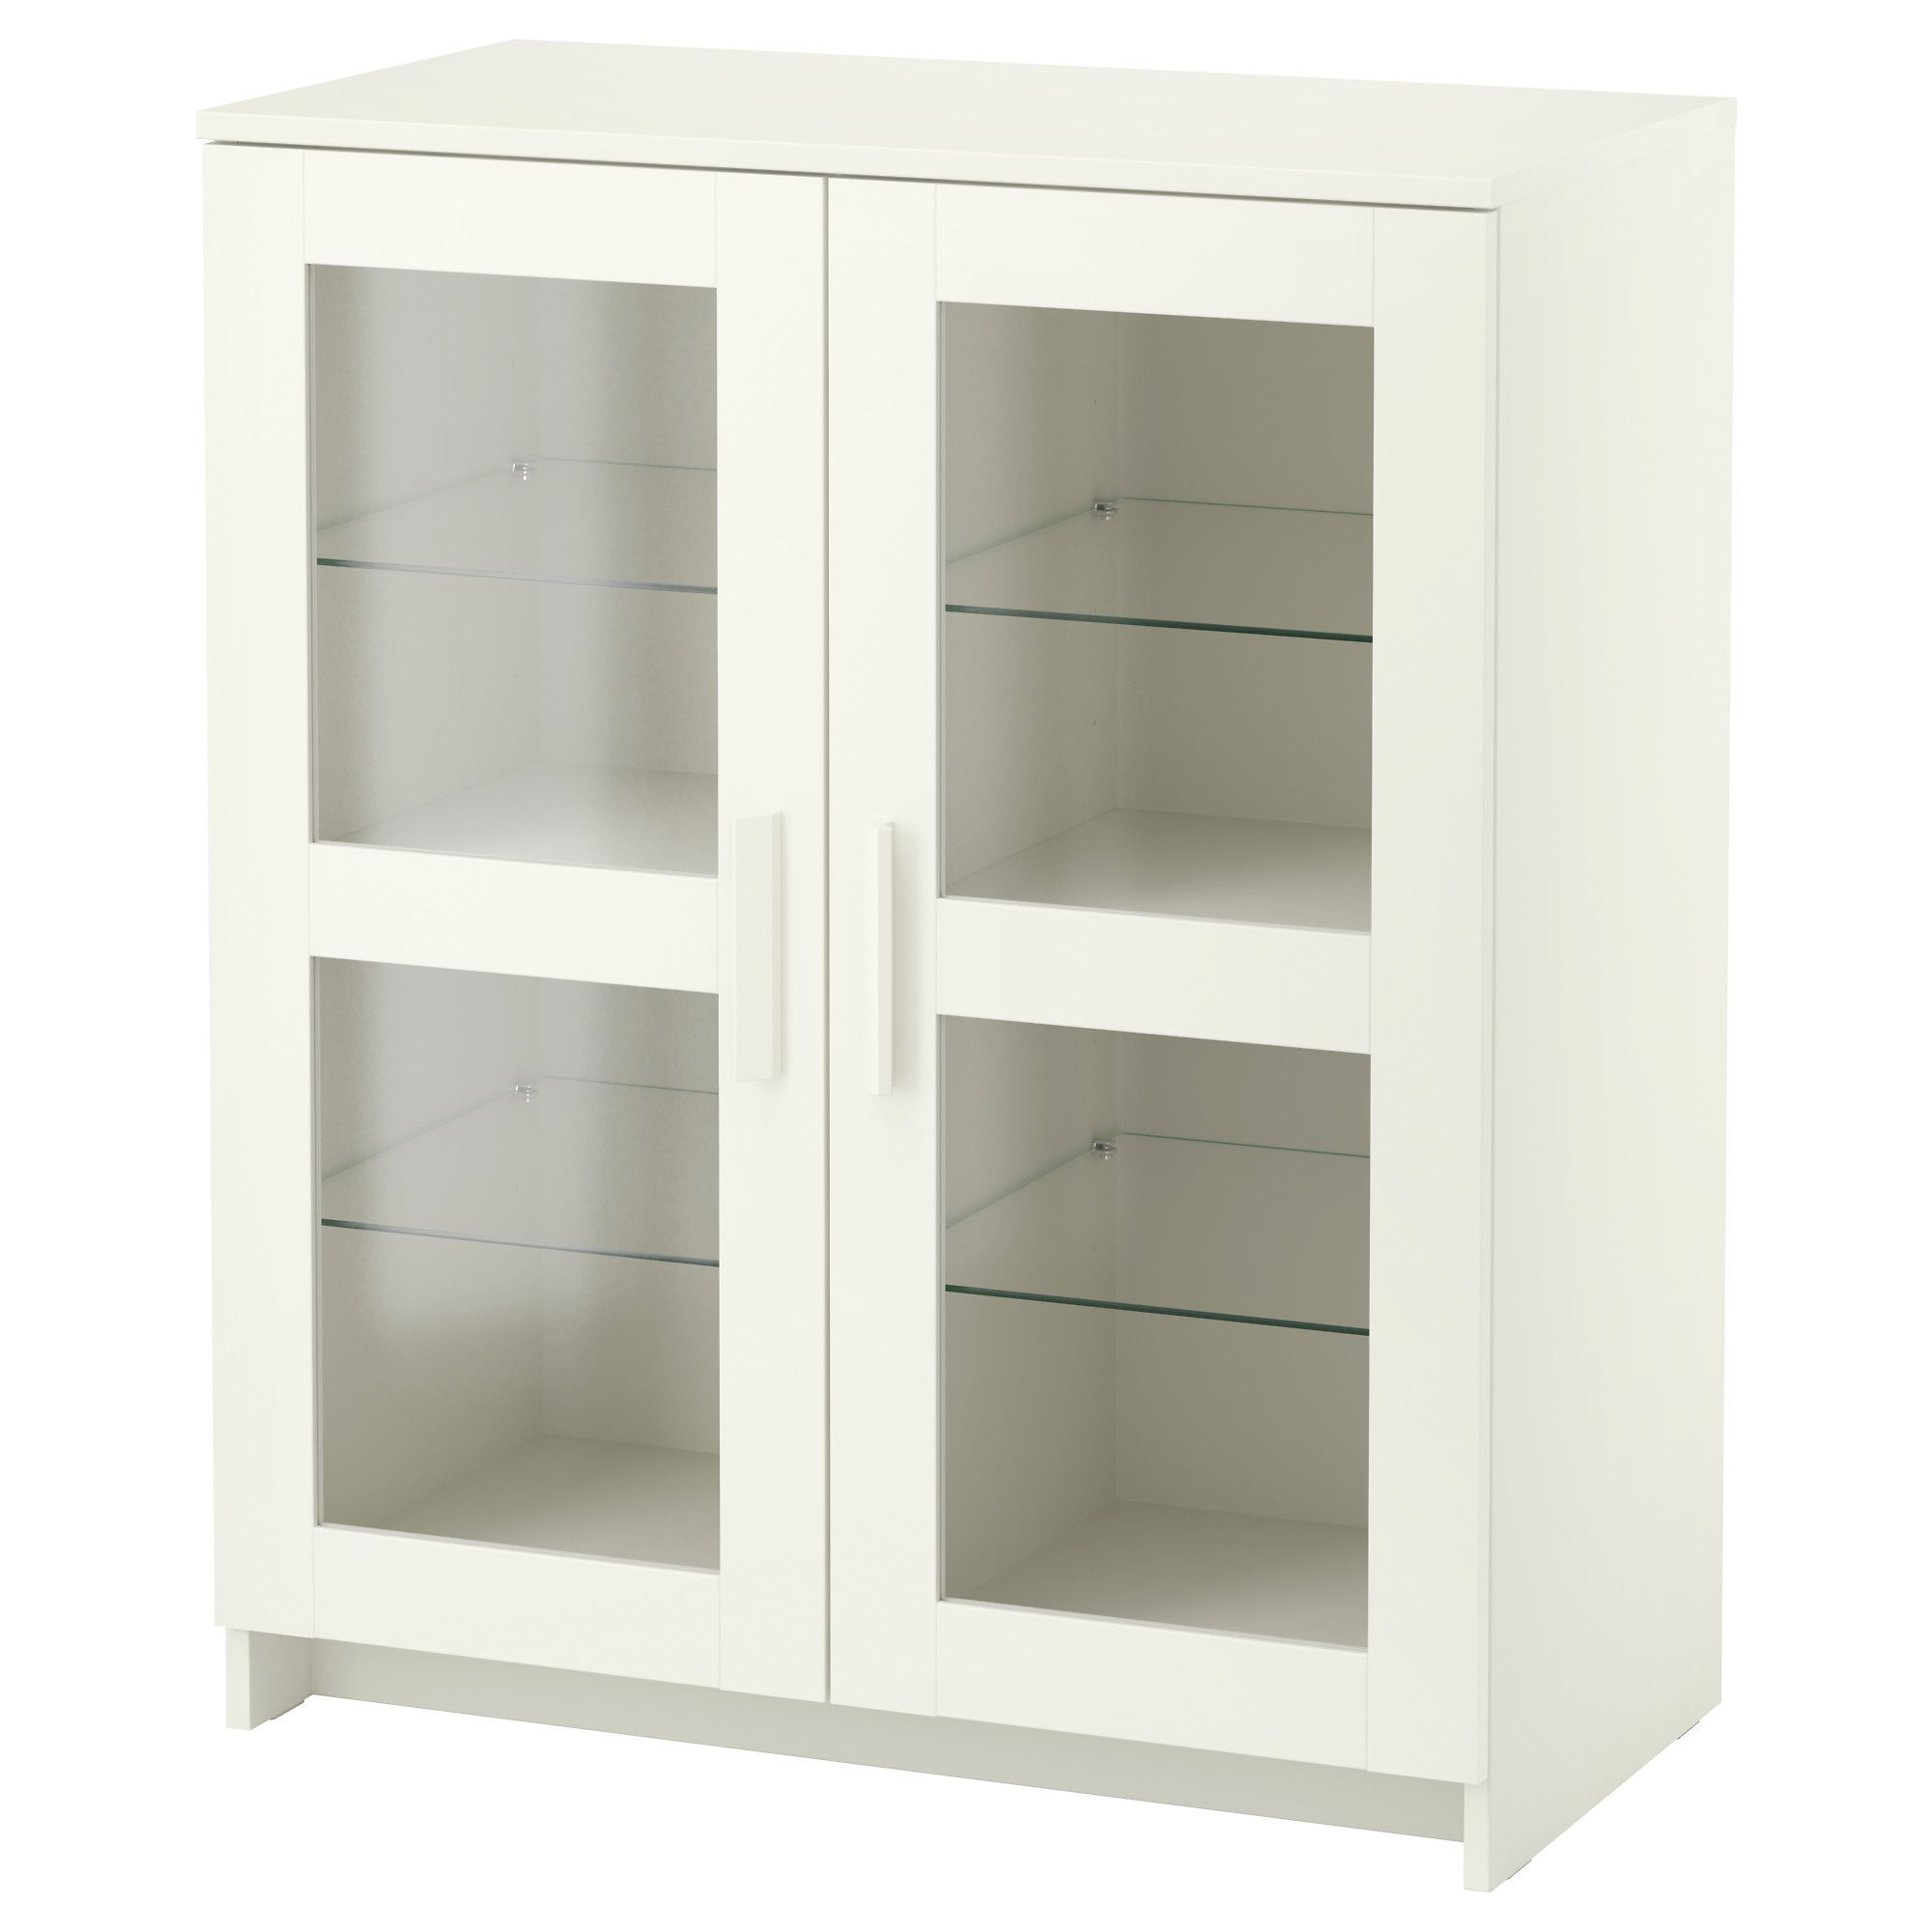 Ikea Brimnes Vitrine Brimnes Cabinet With Doors Glass White Home Office Cabinet